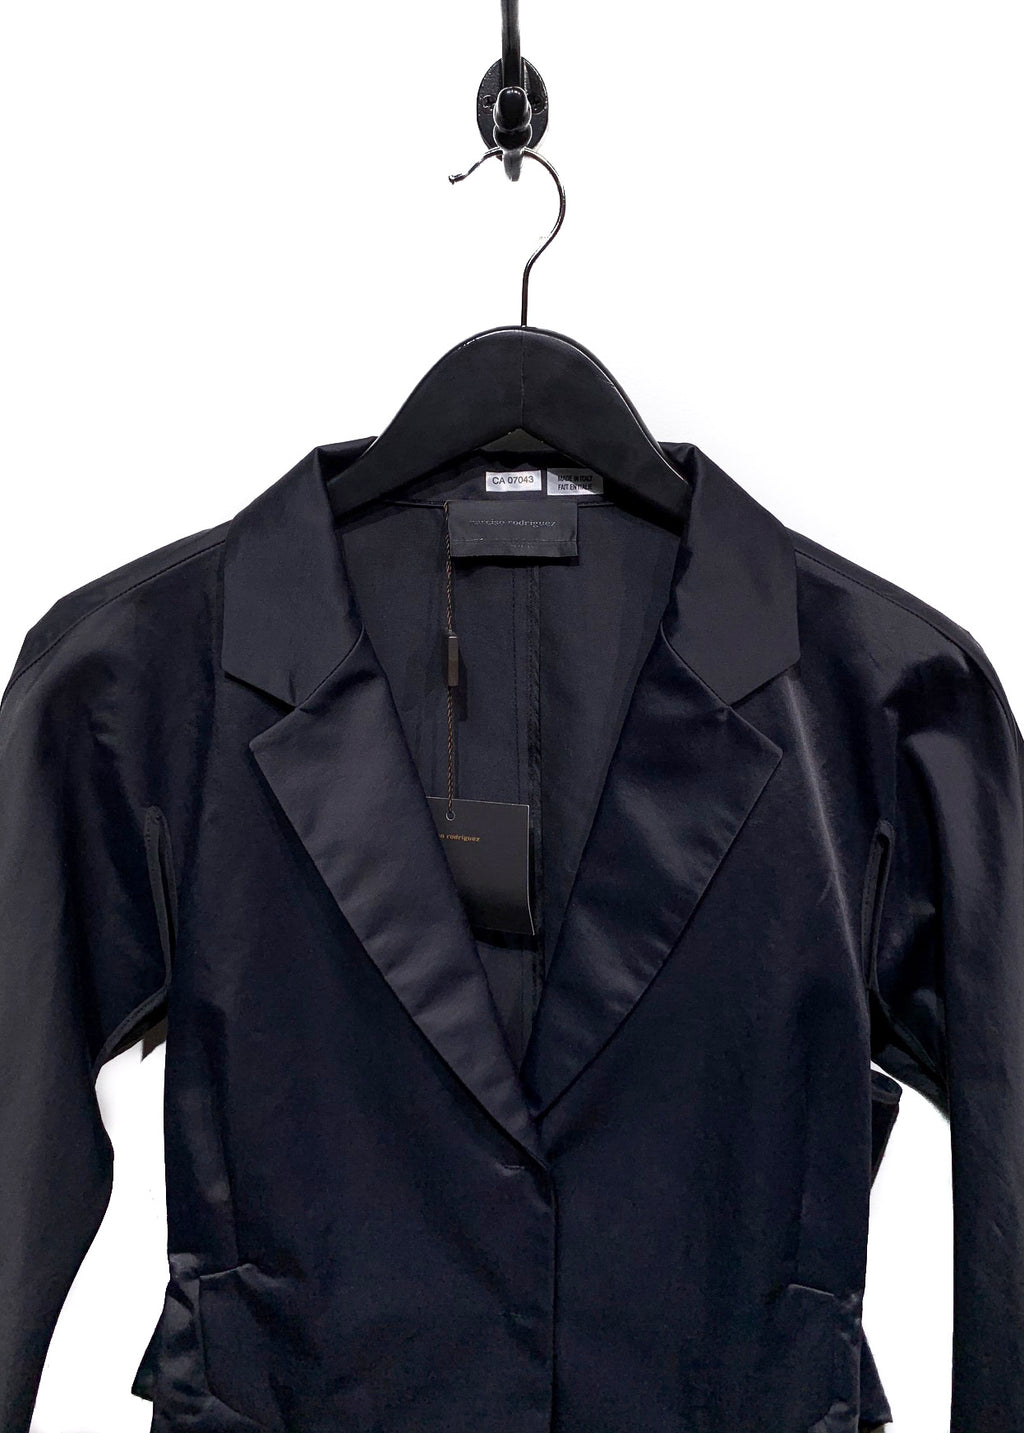 Narciso Rodriguez Black Cotton Blend Cut Out Blazer